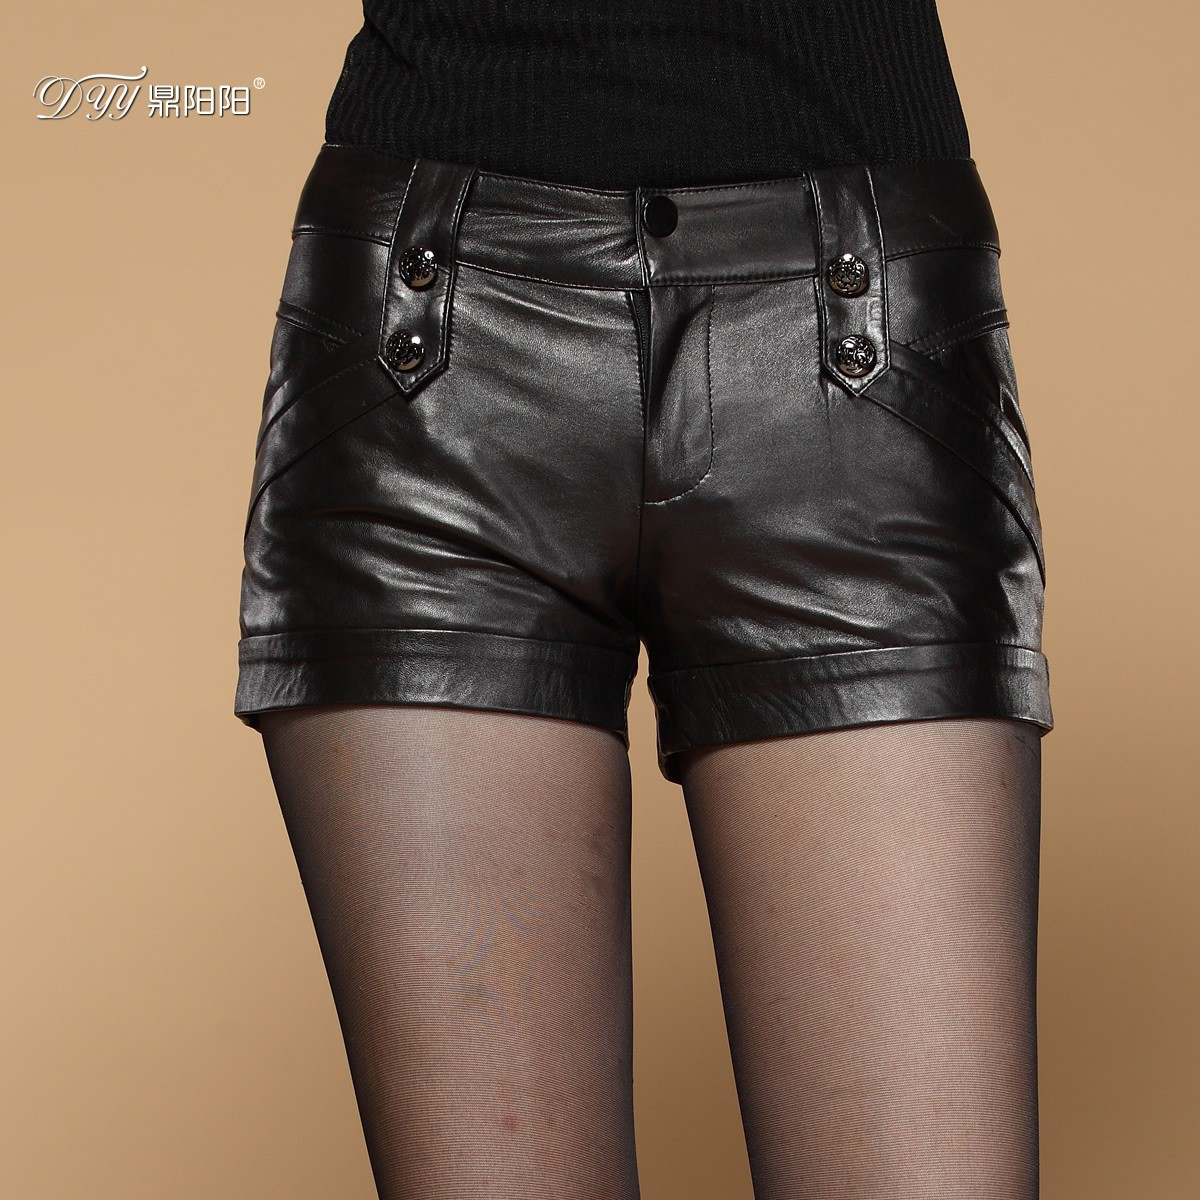 Special ding yang yang 2015 new winter ms. haining leather sheep skin leather shorts shorts shorts fashion